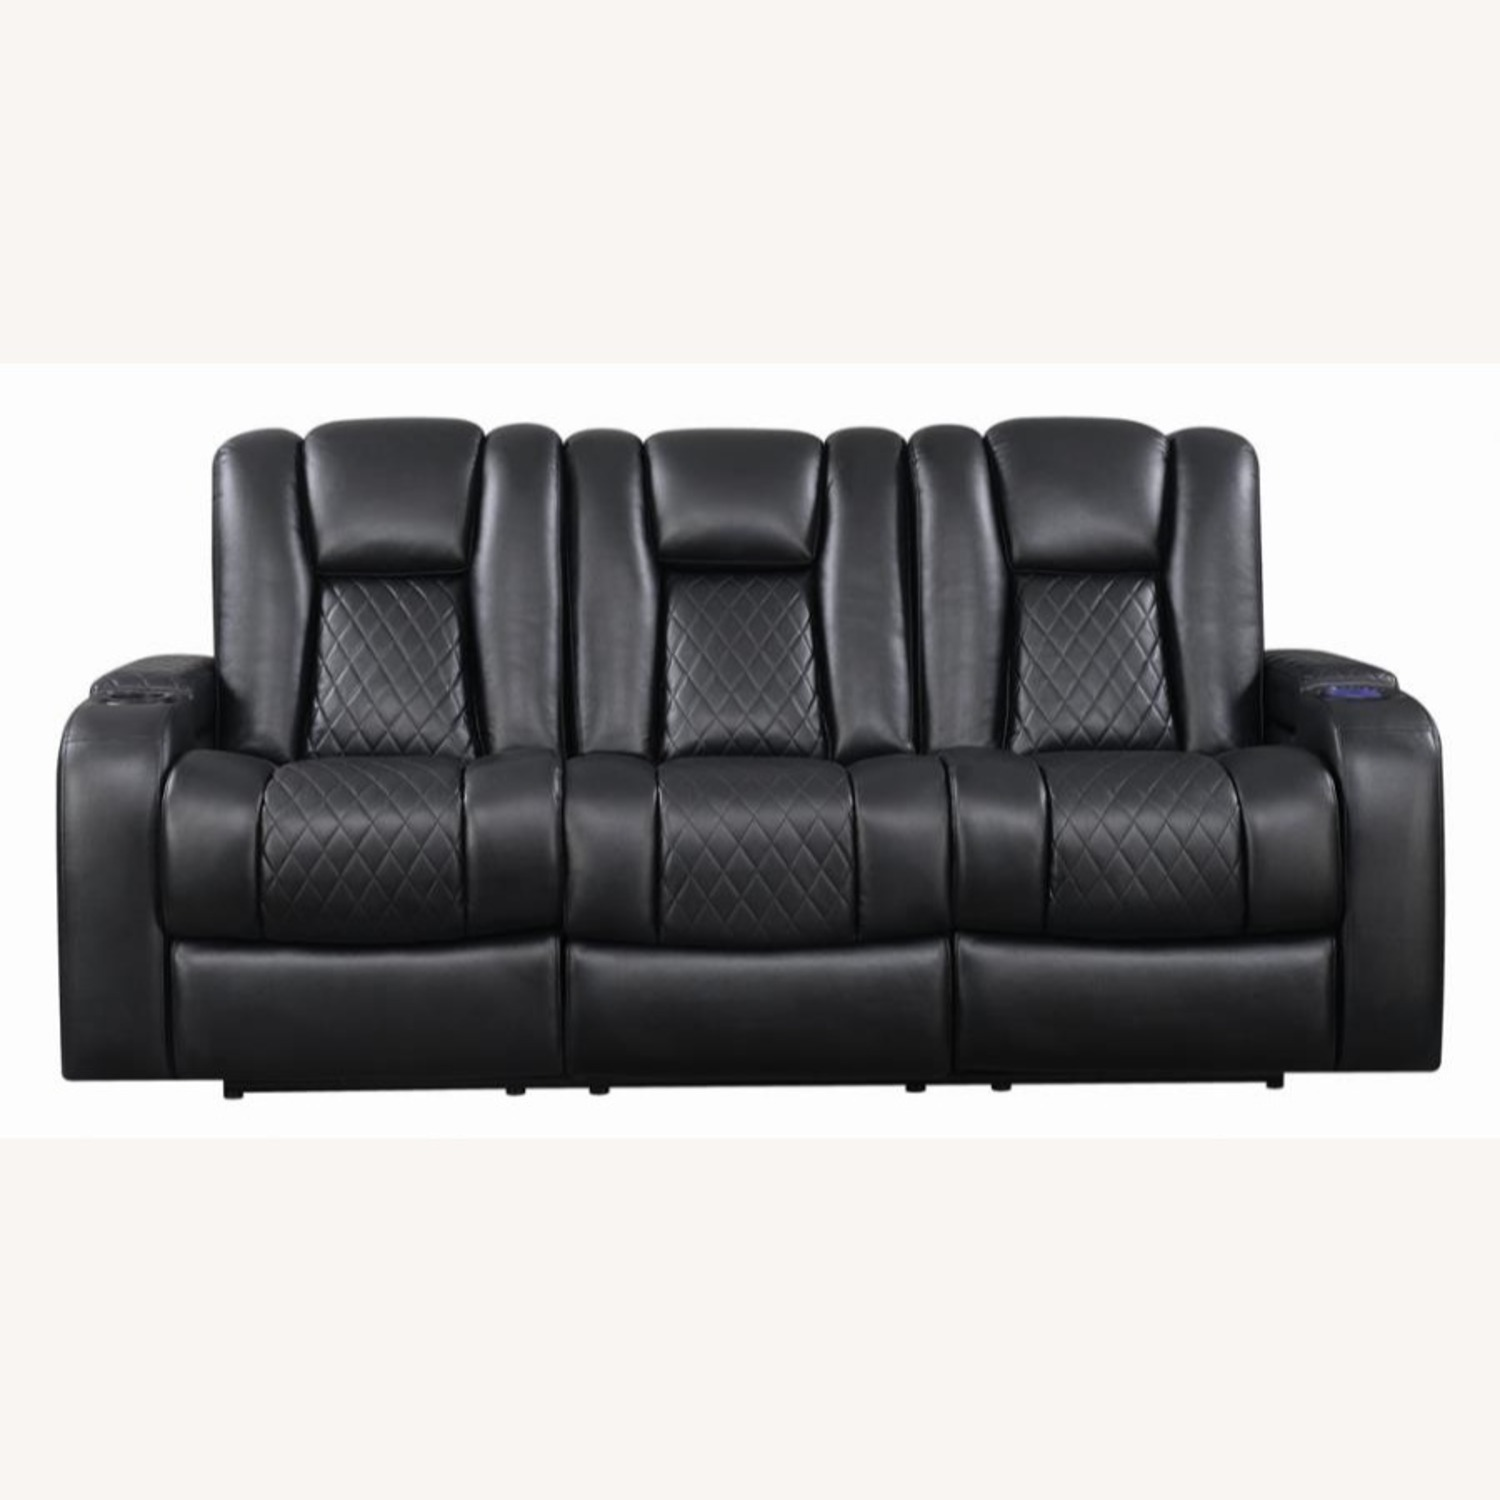 Power Sofa In Black Leather W/ LED Cupholder - image-1